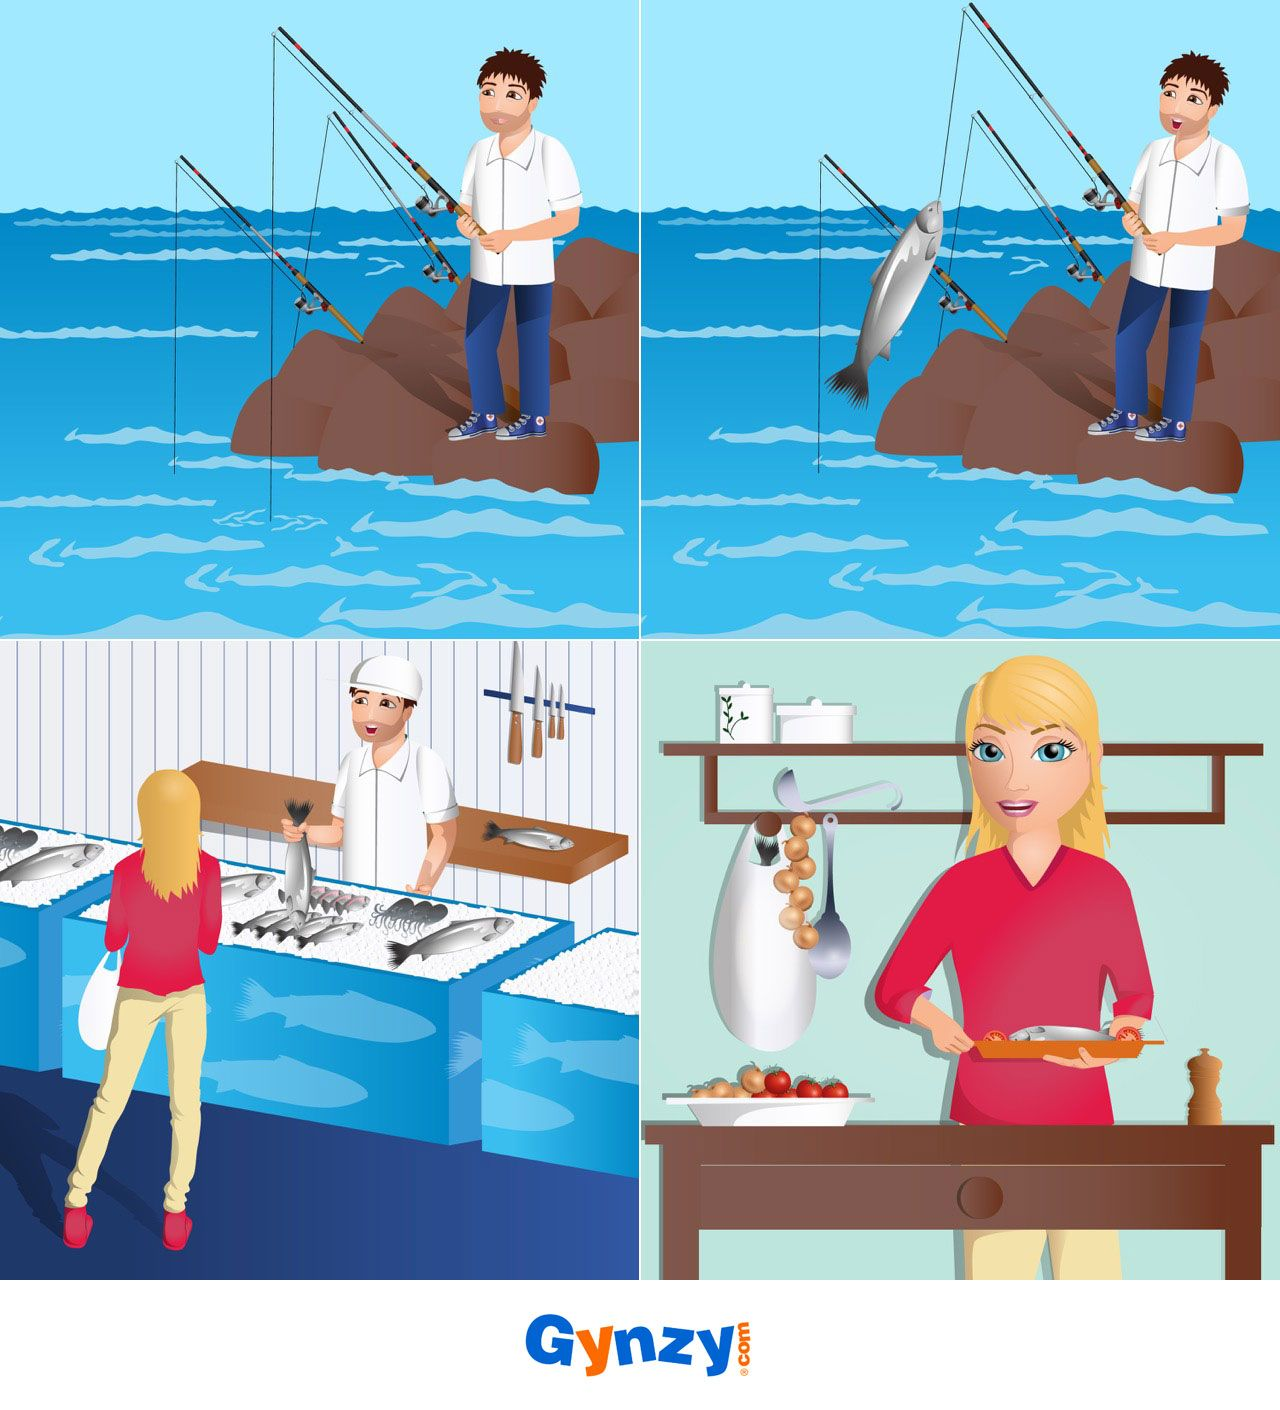 4 Step Sequence Story Pictures About Everyday Life Events Find More At Rnzy